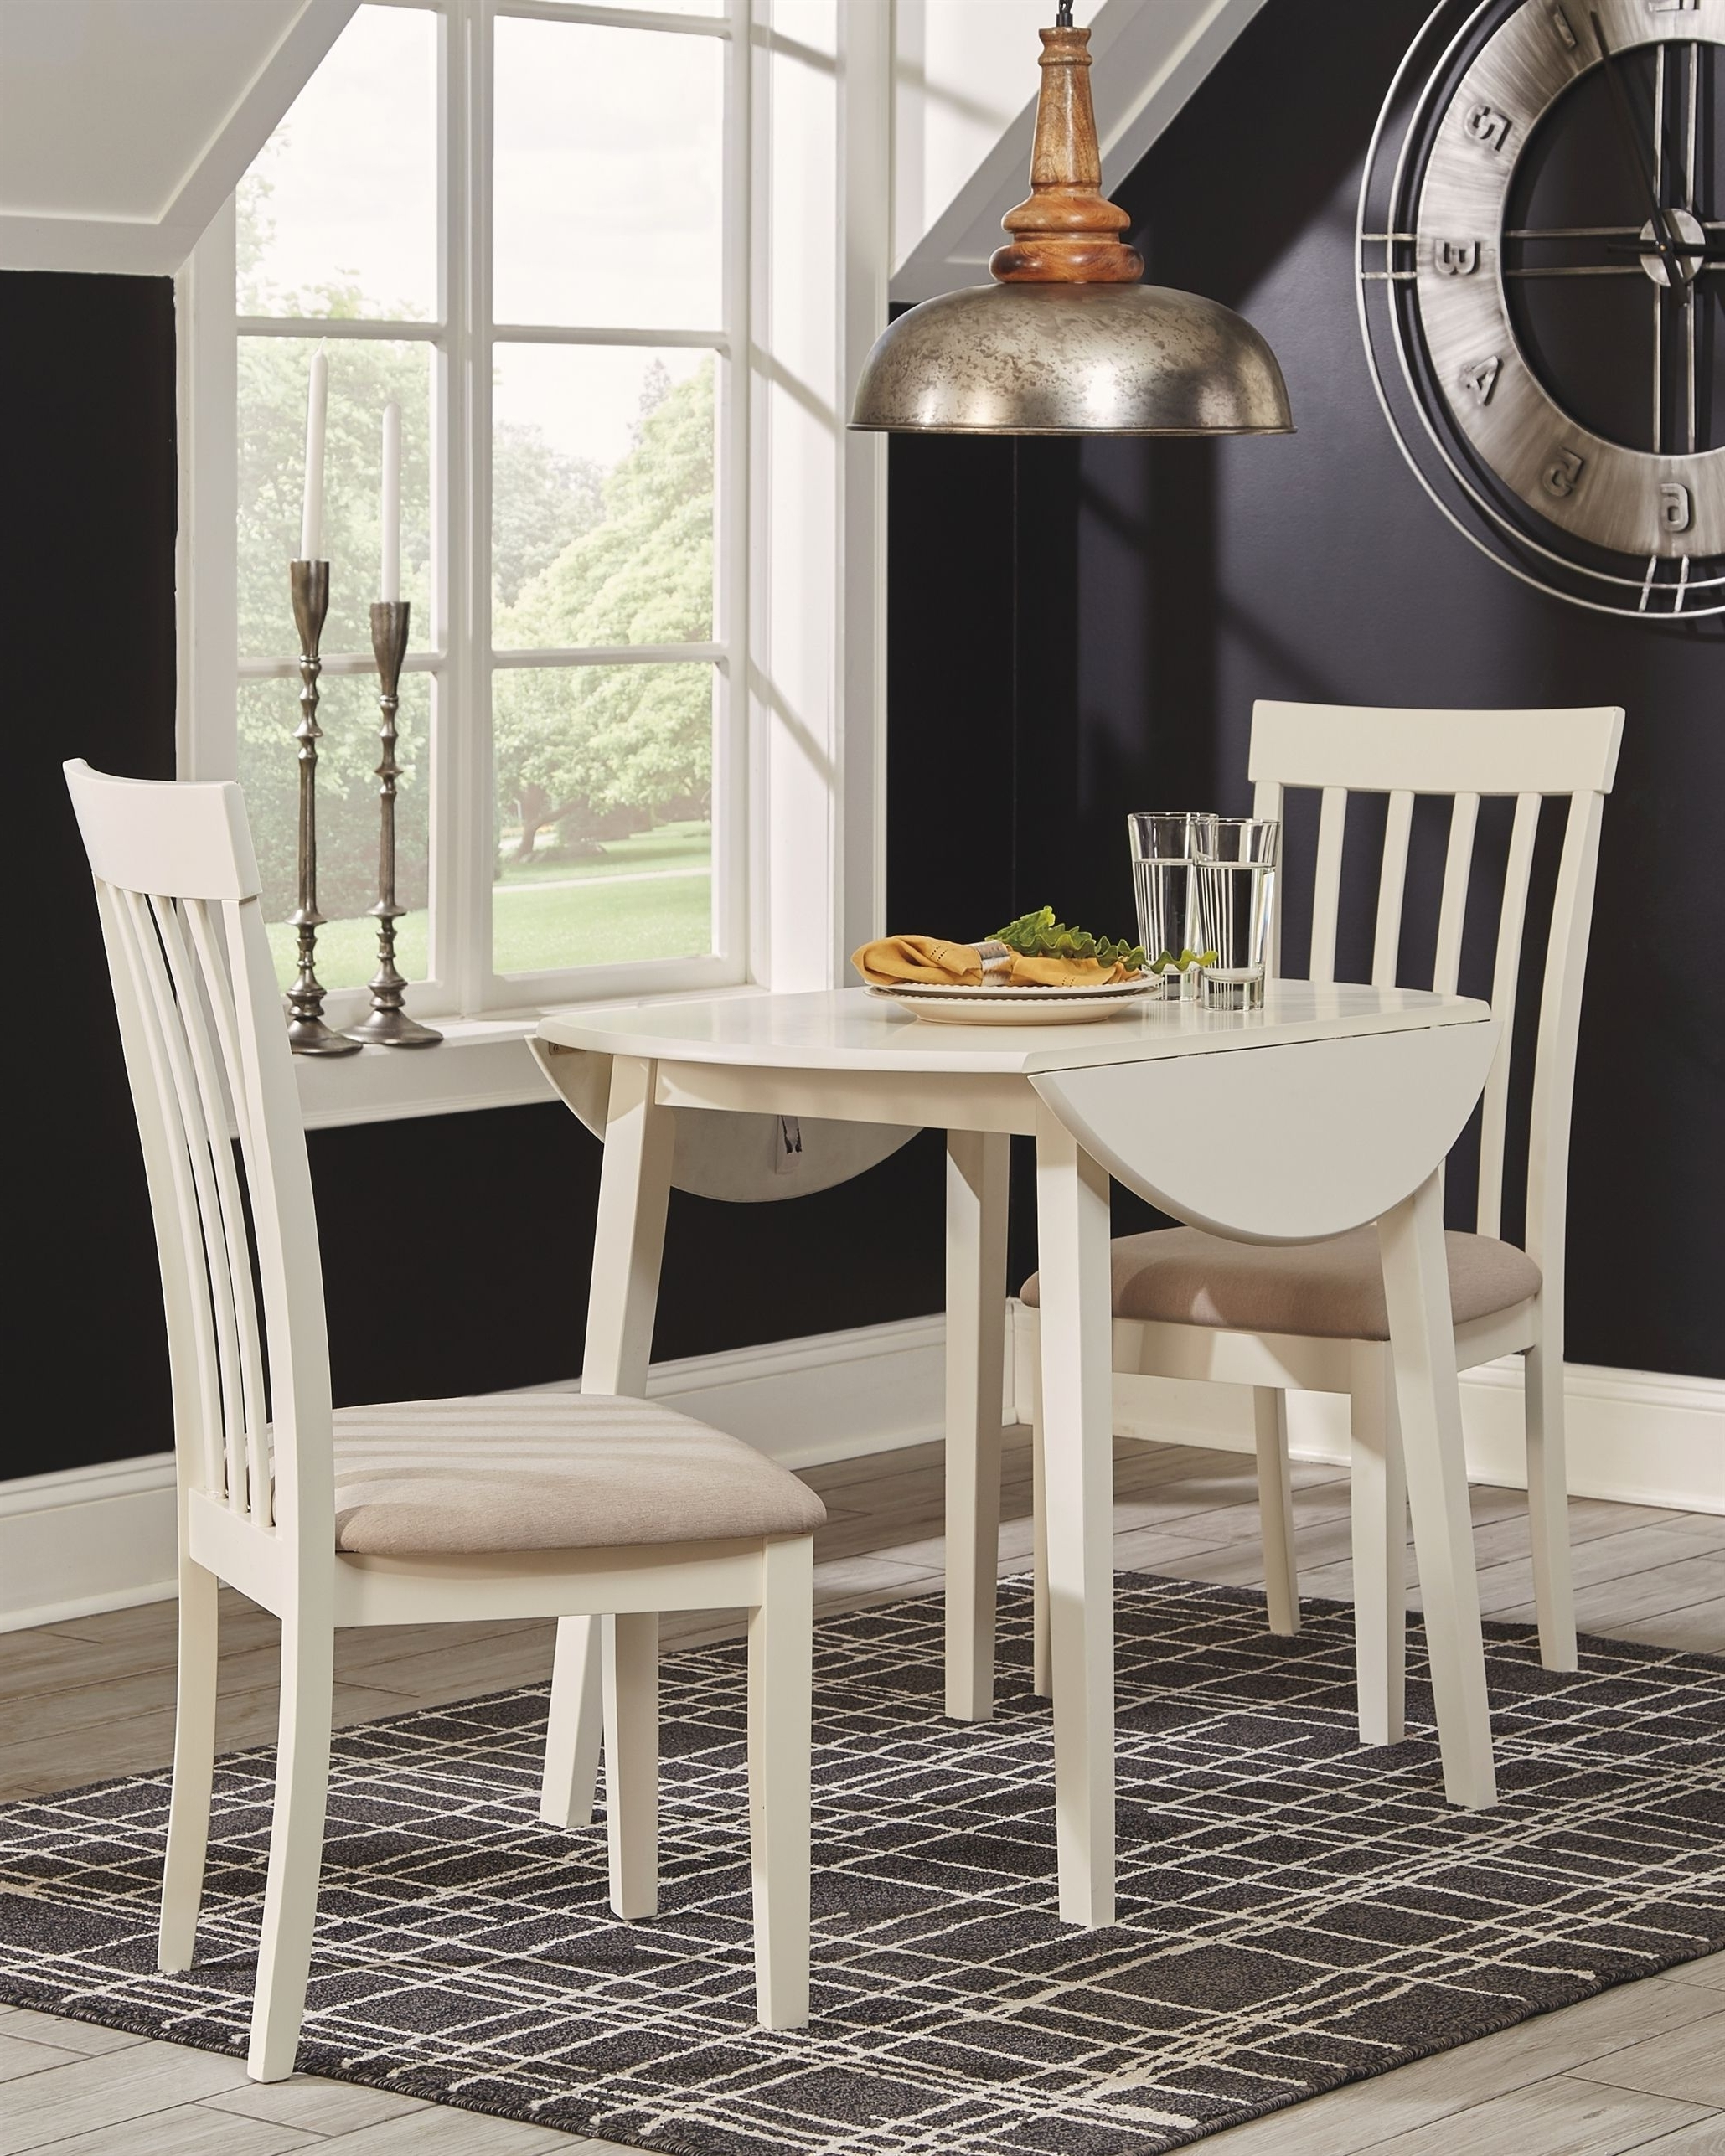 Popular Palazzo 7 Piece Rectangle Dining Sets With Joss Side Chairs Intended For Slannery Dining Room Chair (Set Of 2), White #diningroomchairs (View 19 of 25)